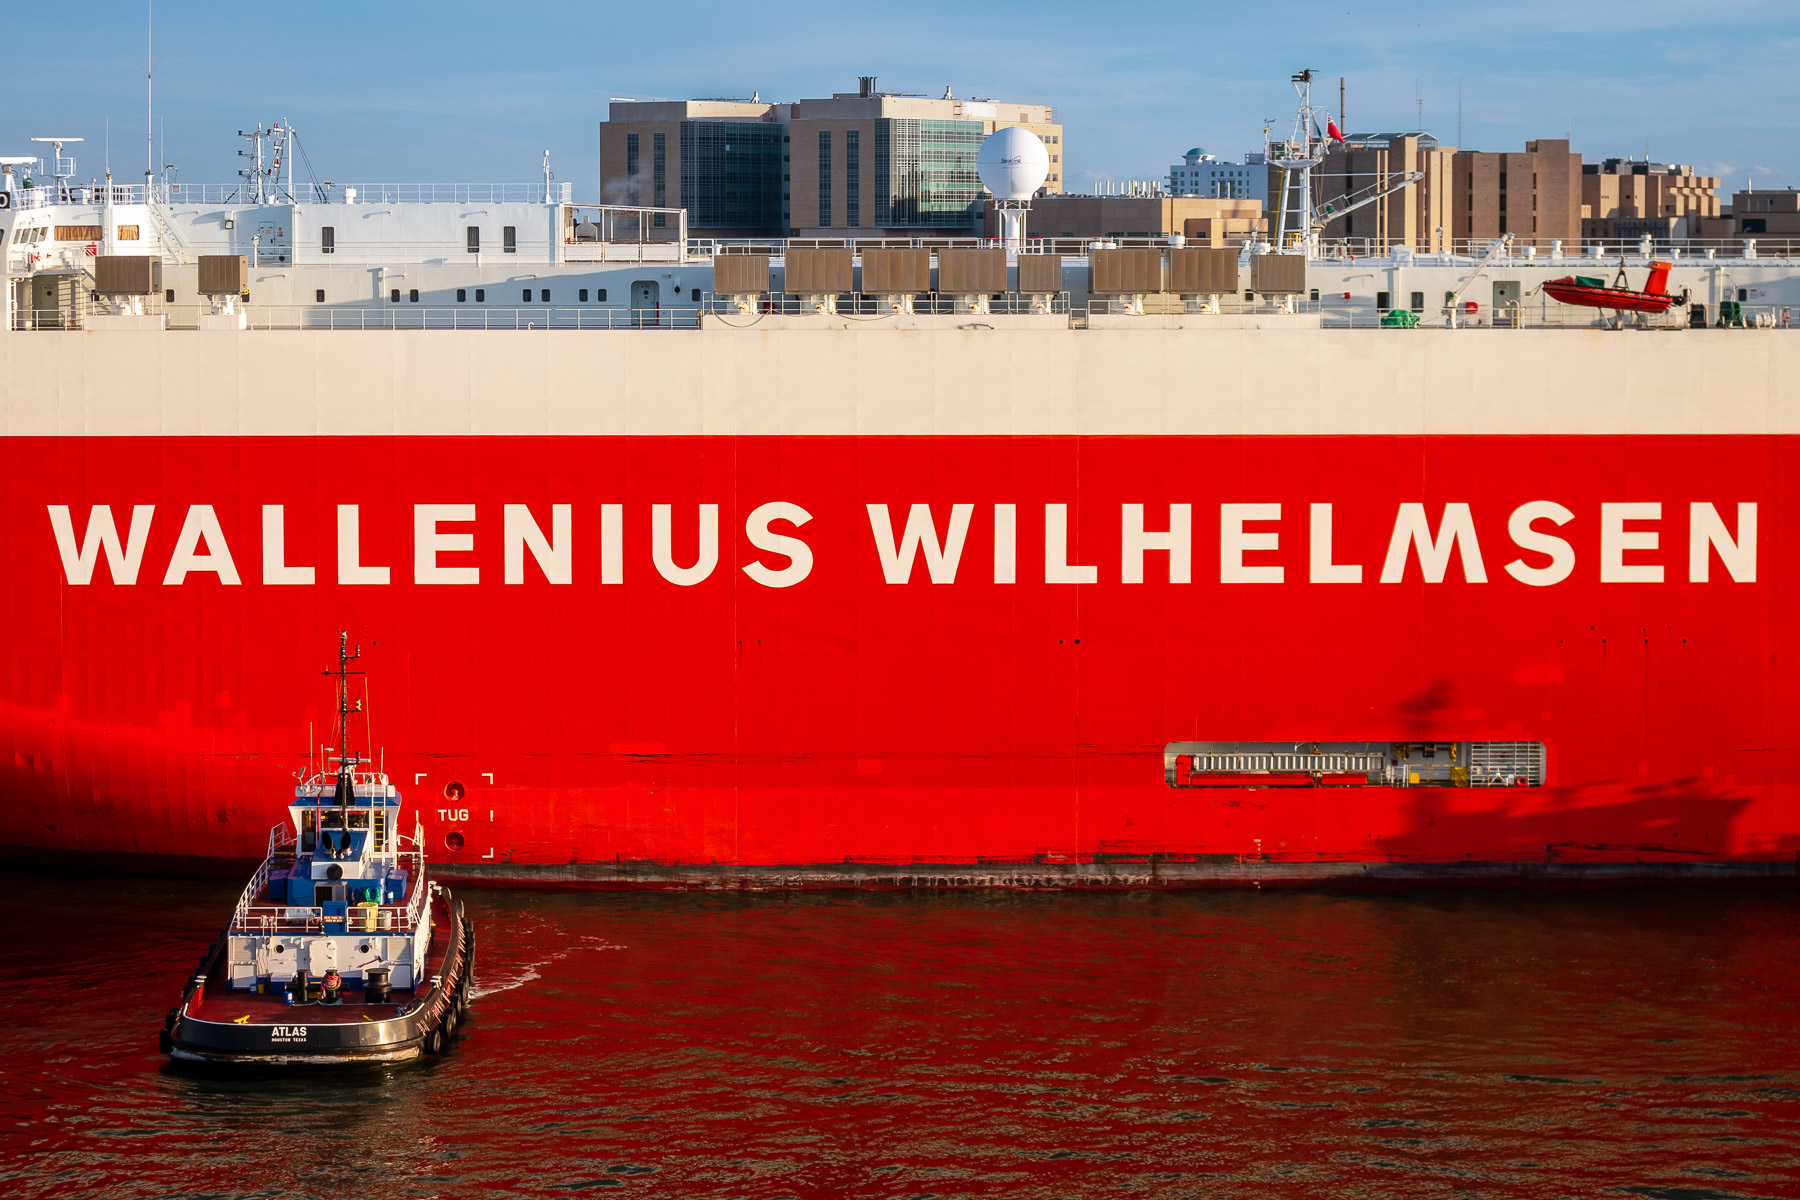 Detail of a Wallenius Wilhelmsen roll-on/roll-off vessel in the Port of Galveston, Texas.